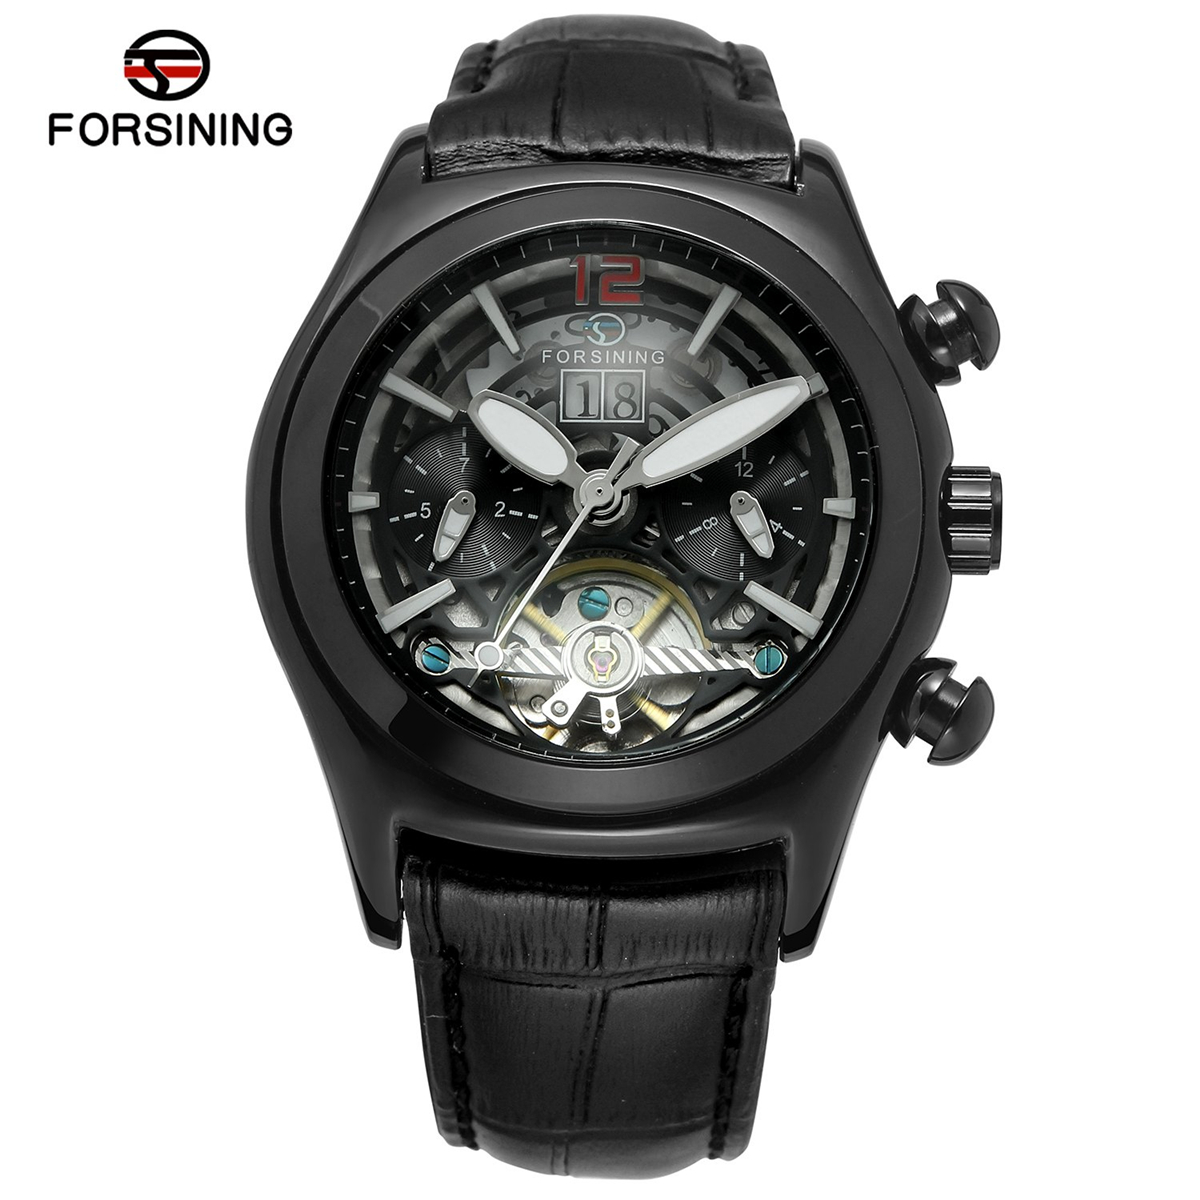 FORSINING Gold Skeleton Tourbillon Mechanical Watch Men Automatic Classic Black Leather Mechanical Wrist Watches Reloj Hombre forsining men s watch vogue skeleton mechanical leather analog classic wristwatch color silver fsg8090m3